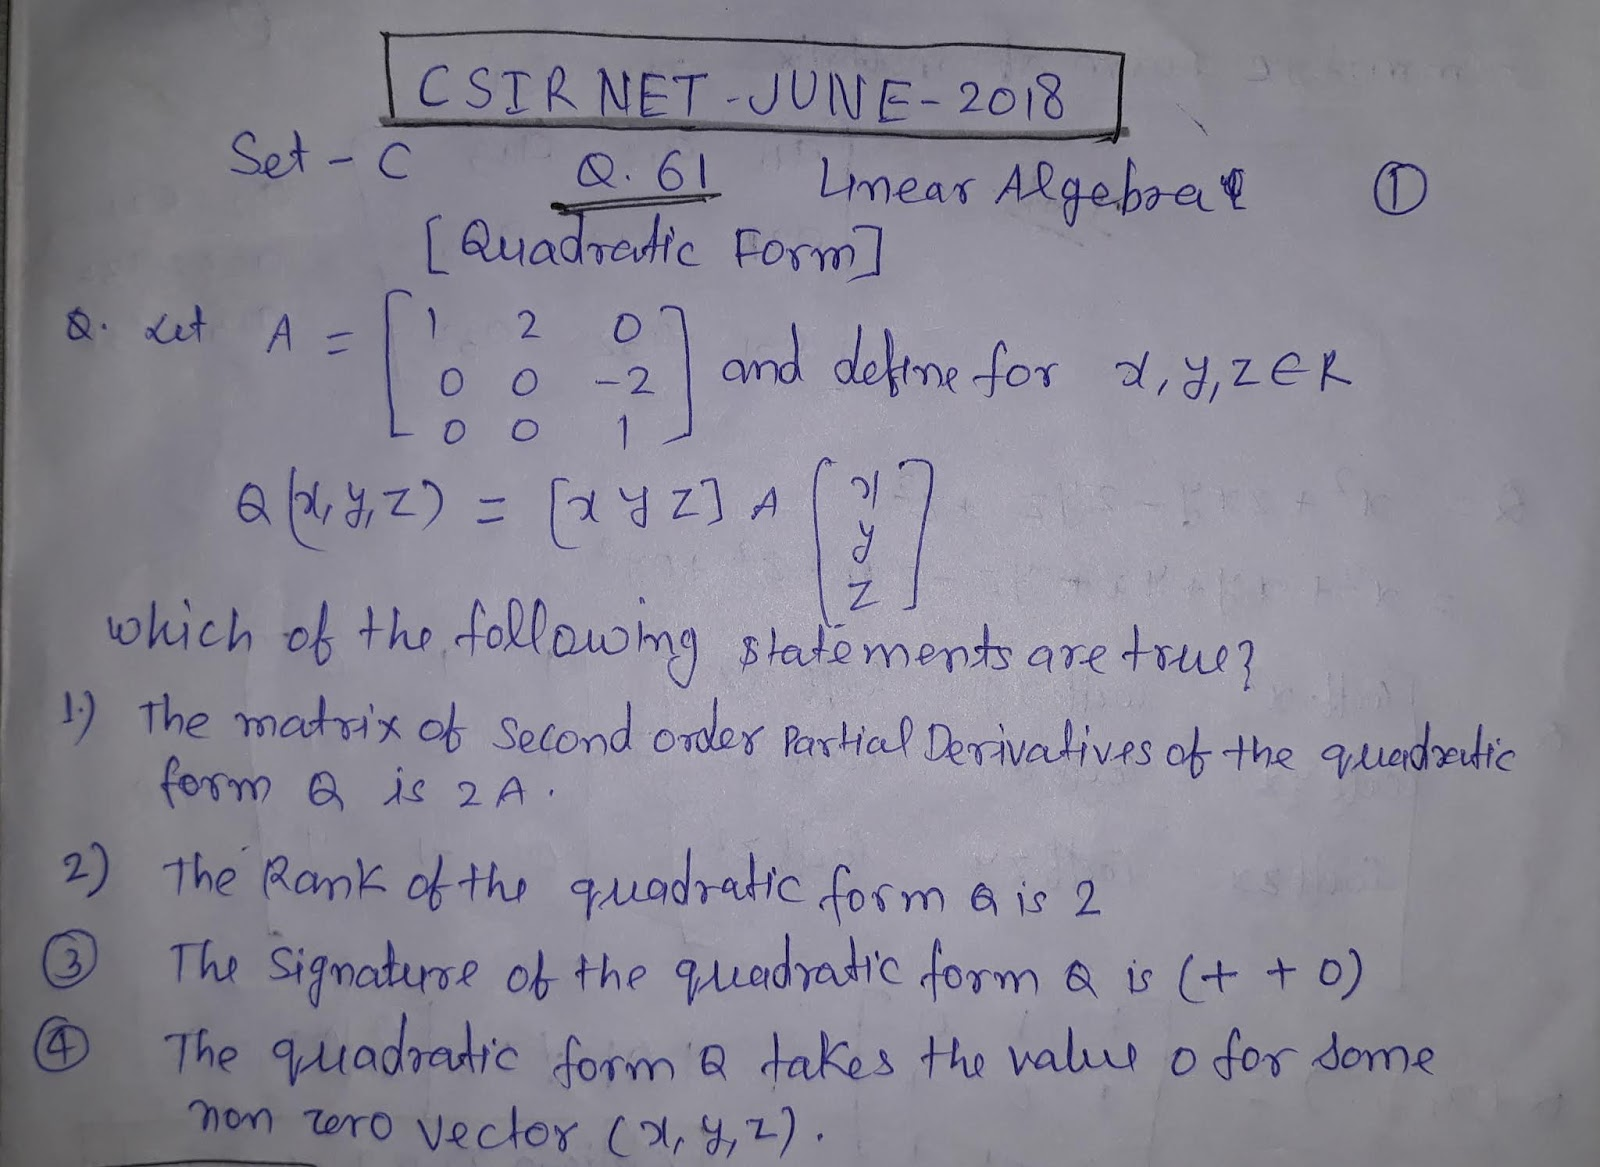 AMMATHS TUTORIALS : CSIR NET JUNE 2018 Q 61 Linear Algebra